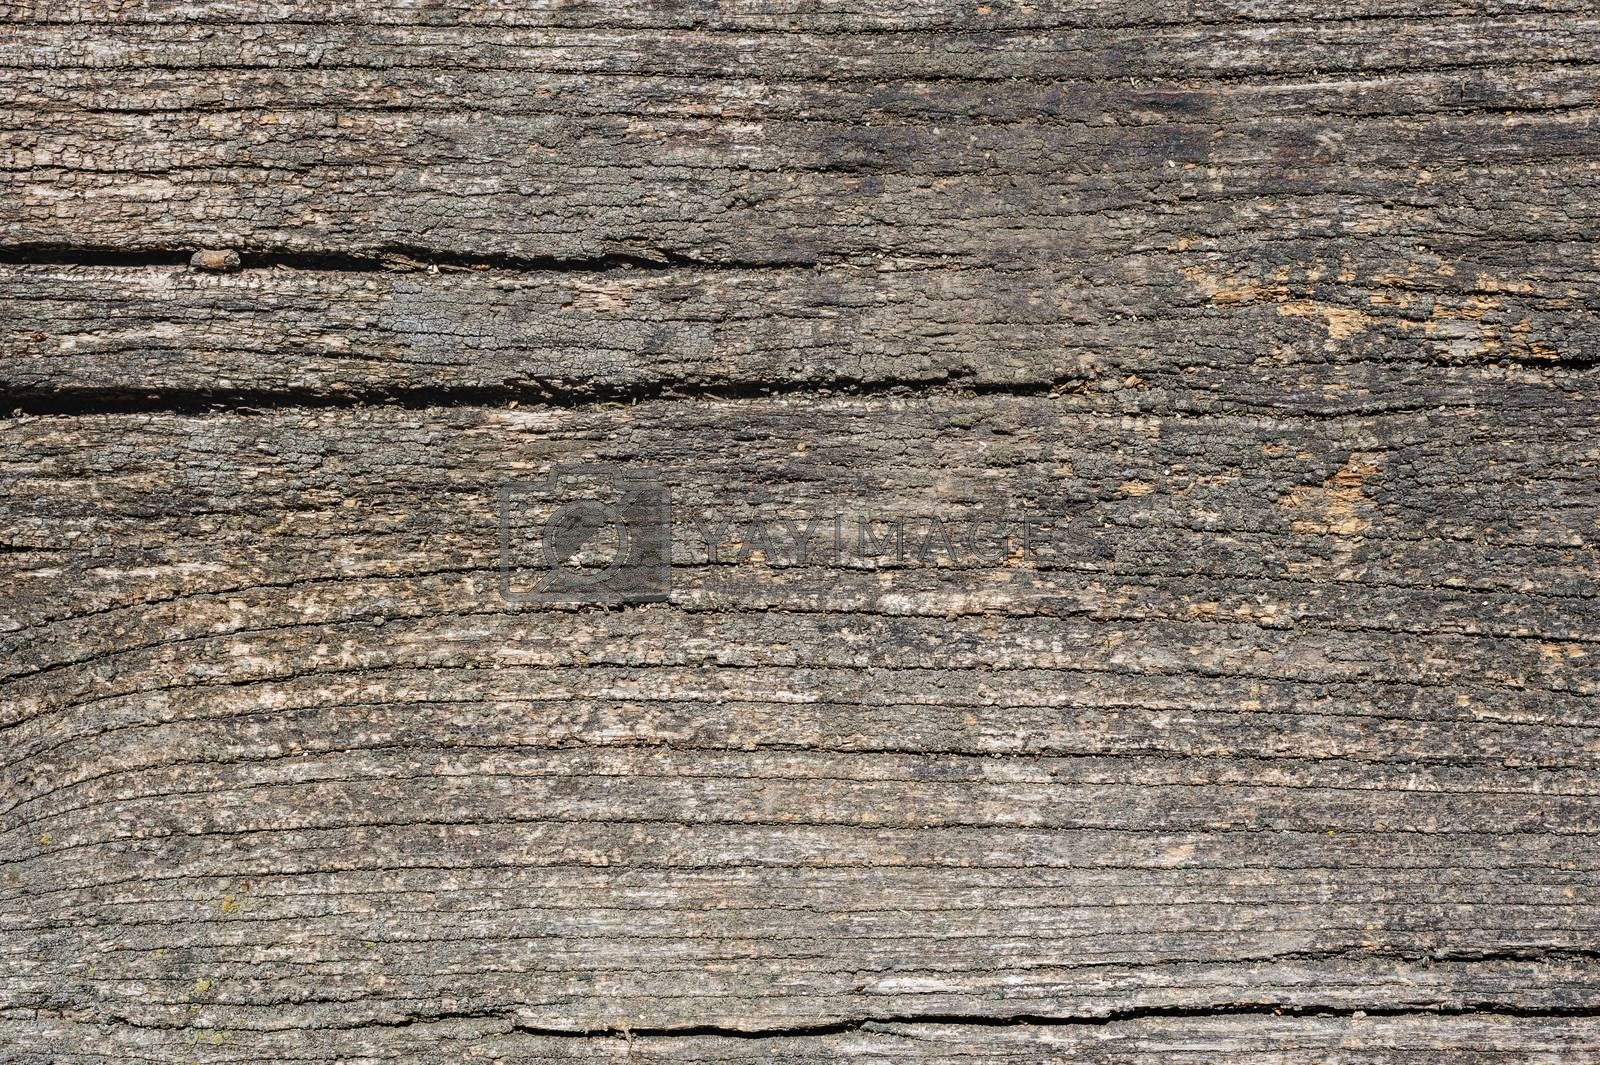 Old aged dirty cracked wood planks, texture with natural organic pattern